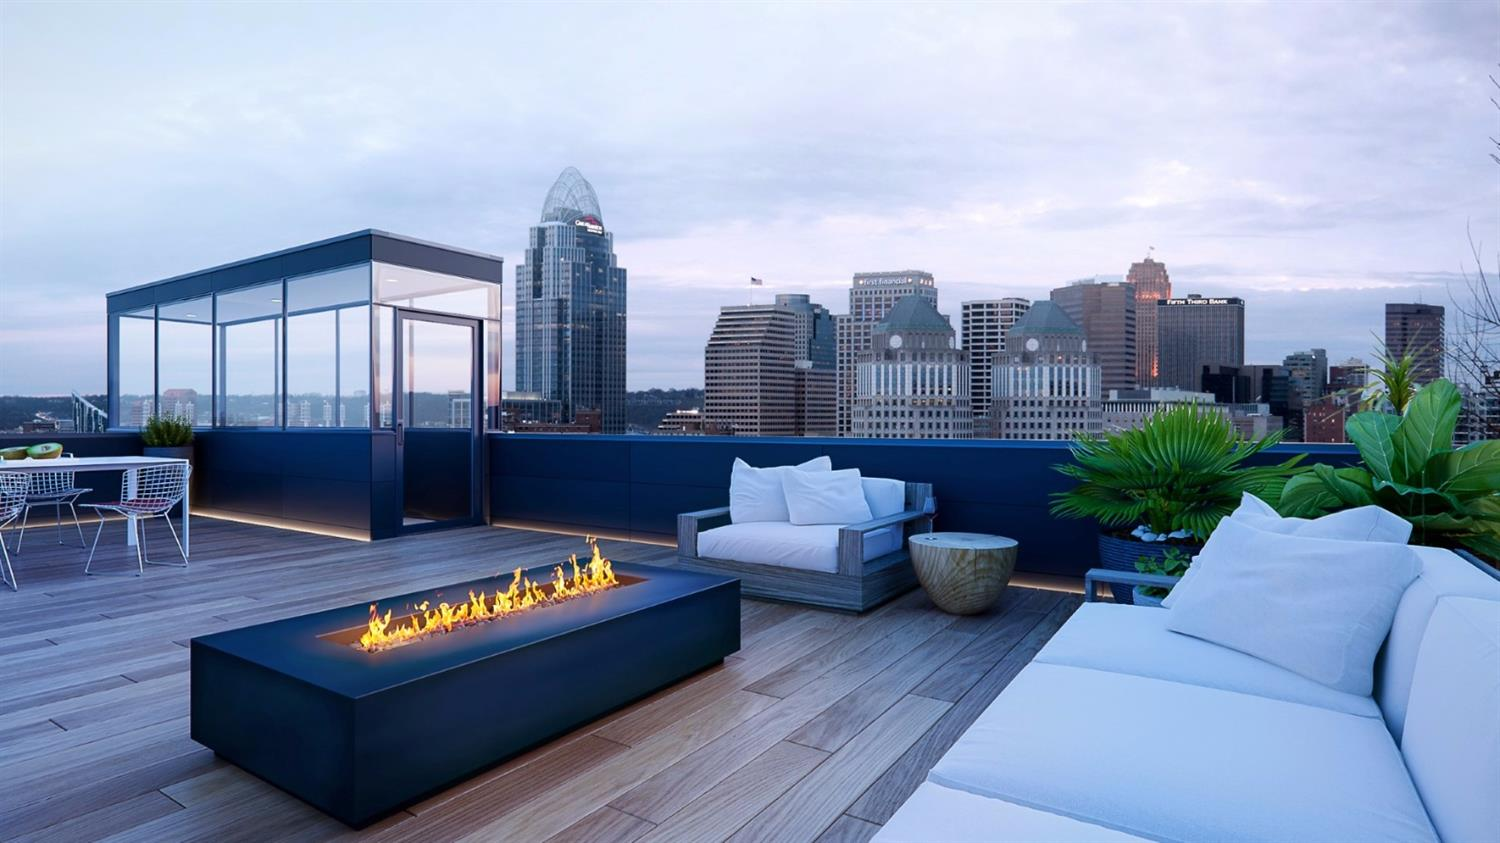 New Construction! 3,100 sqft of beautifully designed luxury living w/an additional 1,600 sqft of unfinished space in this stunning LEED Platinum/Passive House certified Bronzie Design+Build masterpiece. Expansive rooftop deck overlooking  downtown&OTR +an elevator,2car garage,15yr tax abatement,top of the line finishes. Worry free urban living!